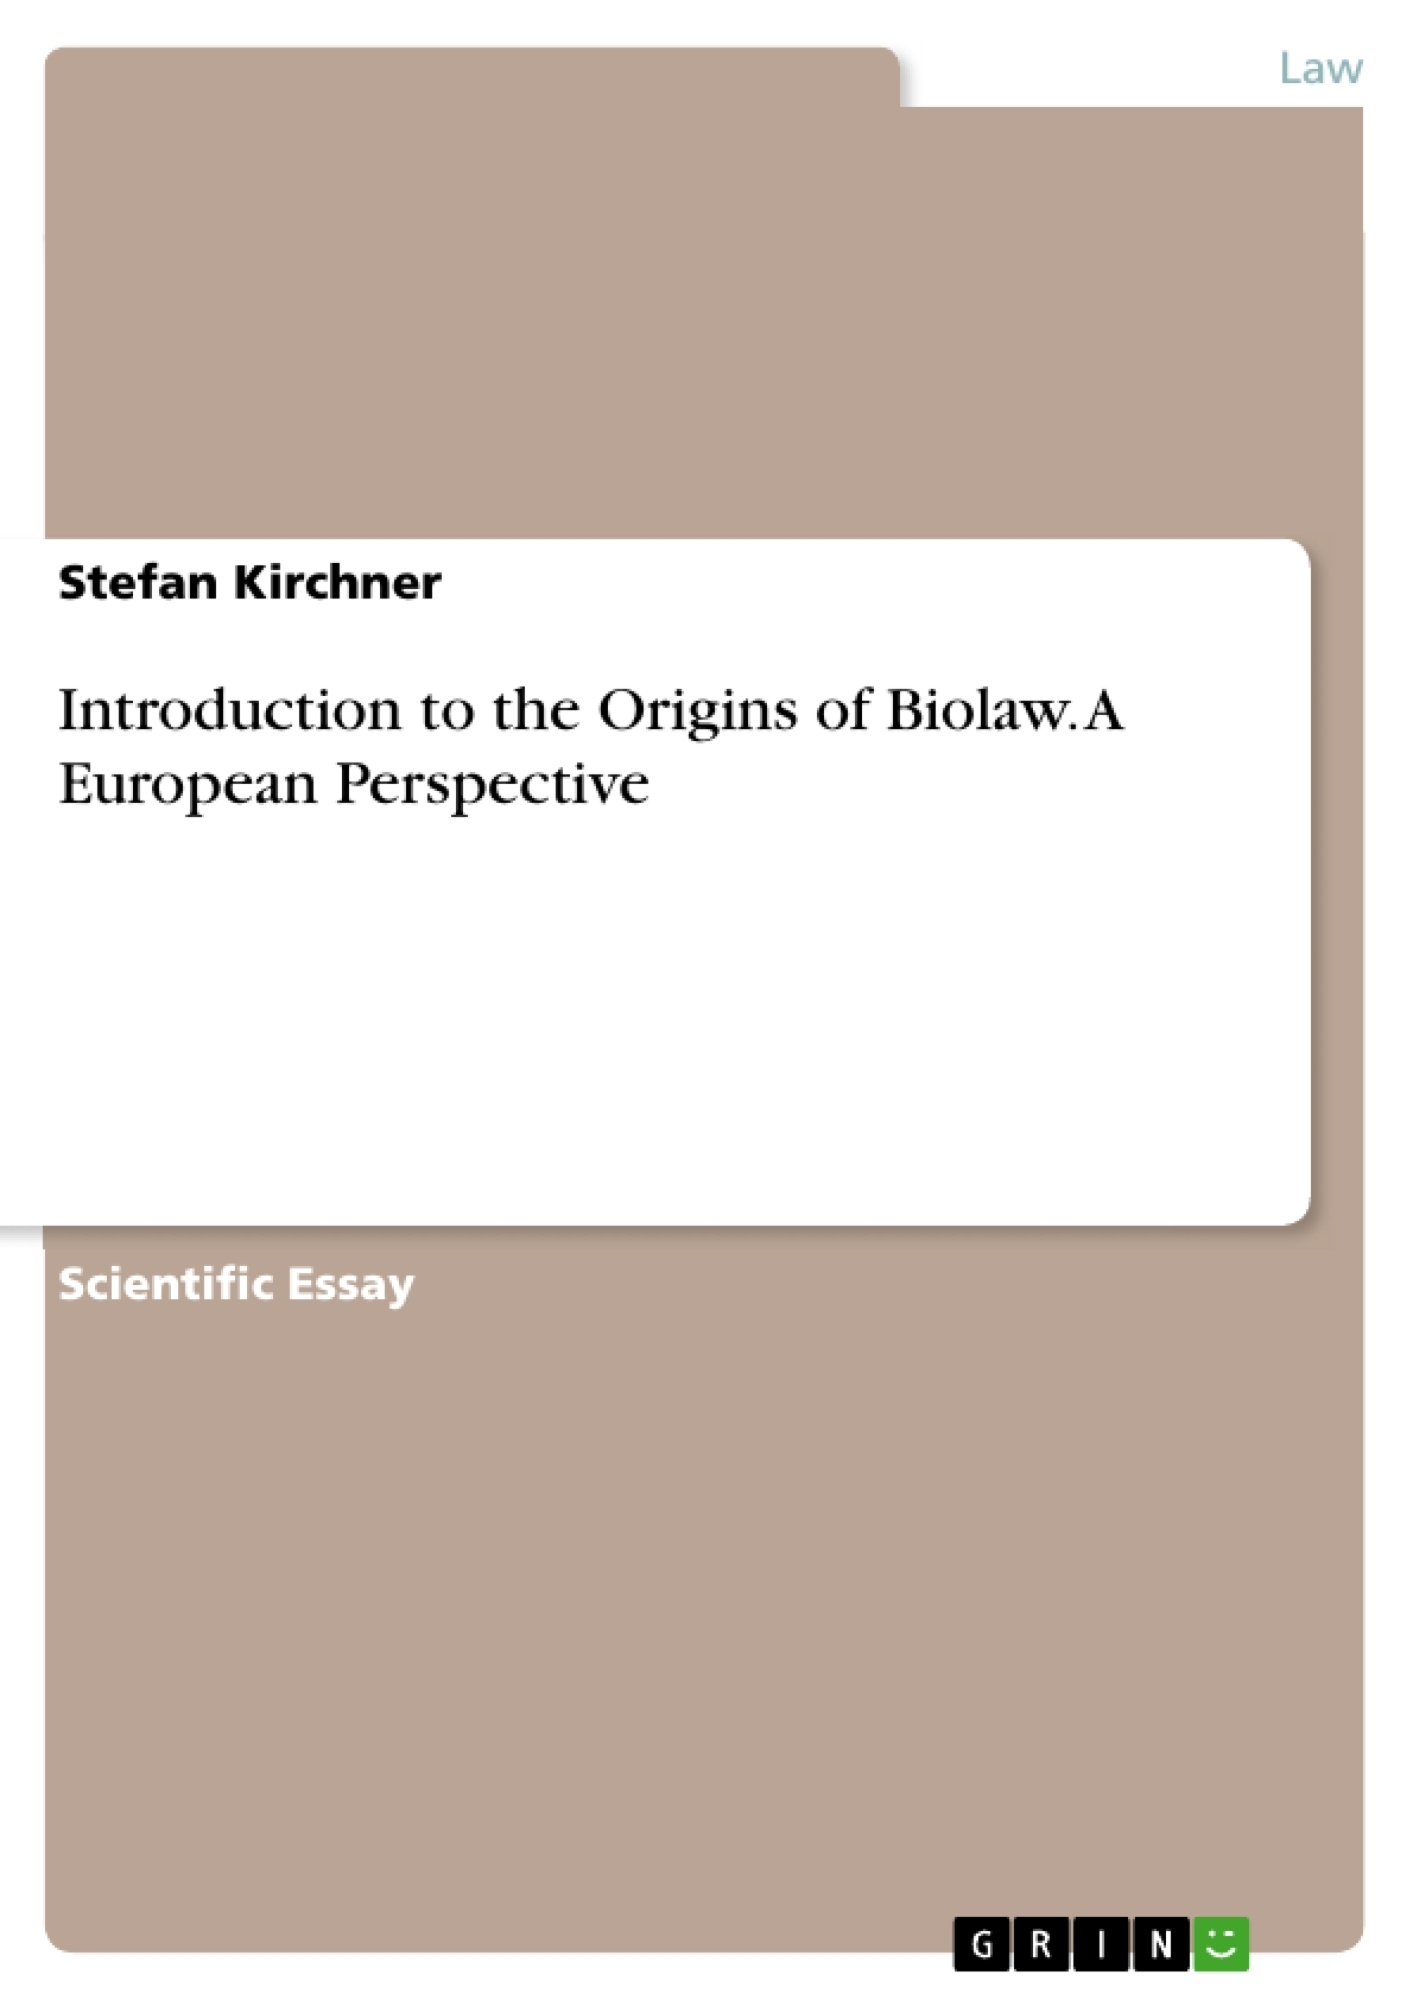 Title: Introduction to the Origins of Biolaw. A European Perspective